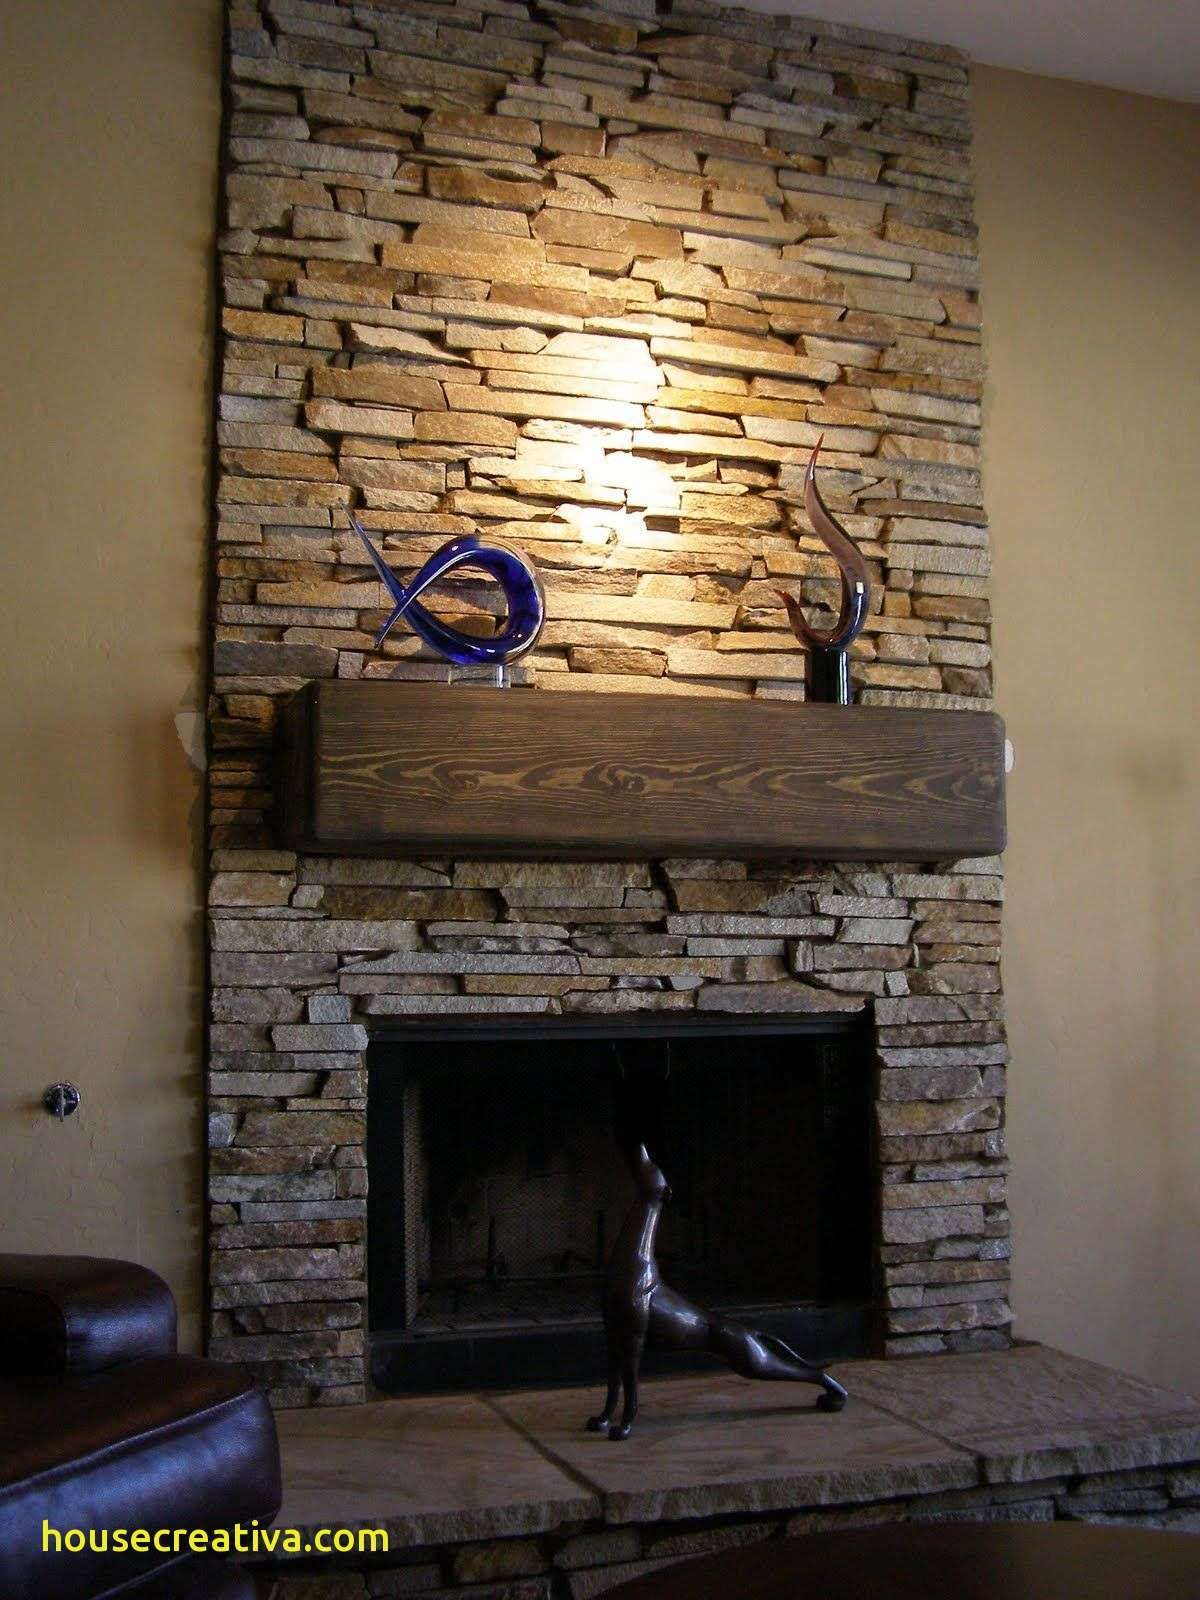 Awesome Cultured Stone Fireplace   #homedecoration #homedecorations #homedecorat..., #Awesome #Cultured #Designoftheconversion #fireplace #Fireplaceandstove #homedecorat #homedecoration #homedecorations #stone